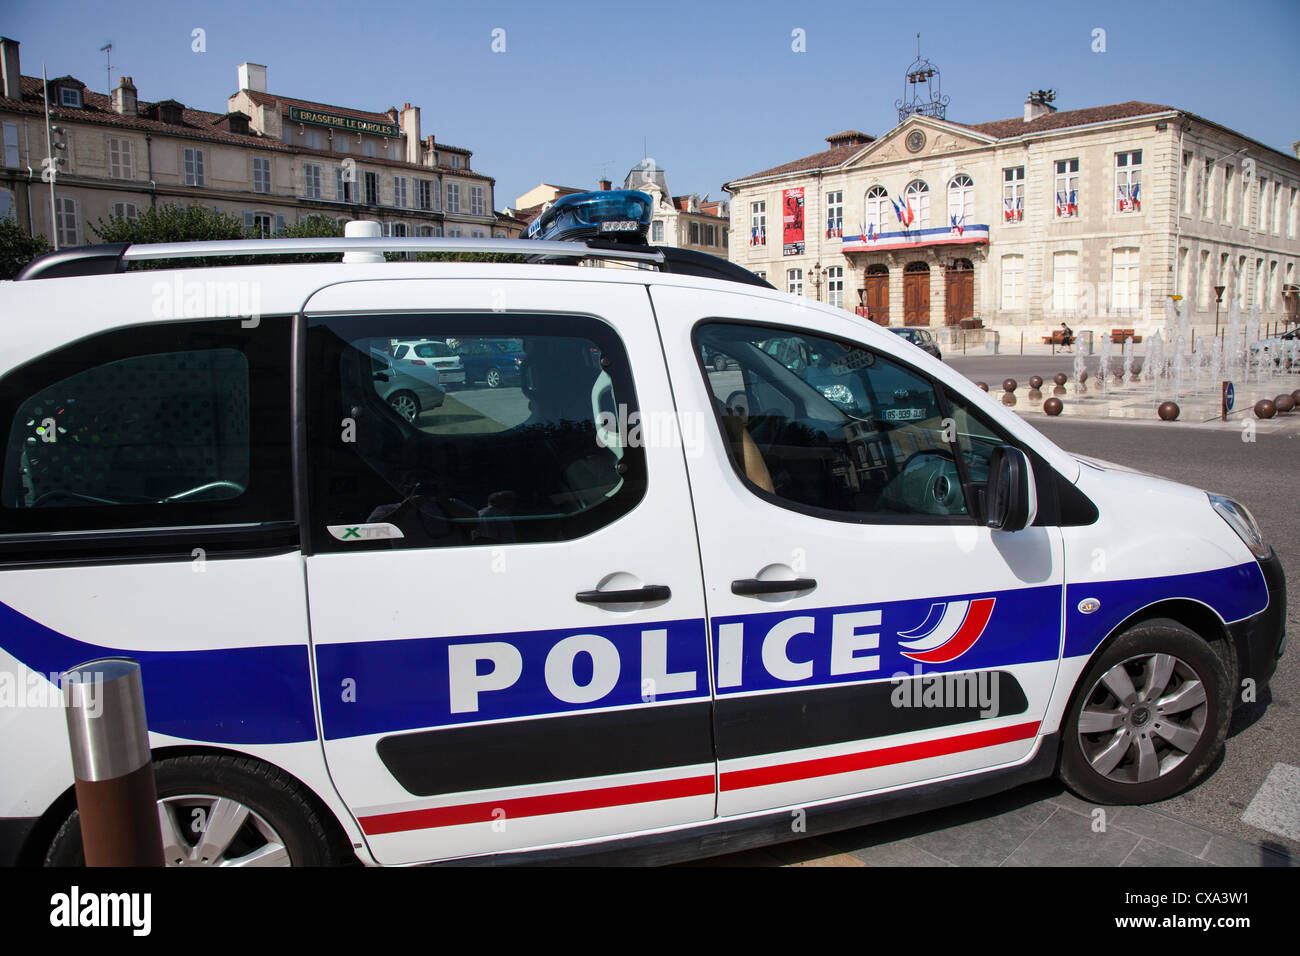 Police car in Auch, Gers, Midi Pyrenees, France - Stock Image